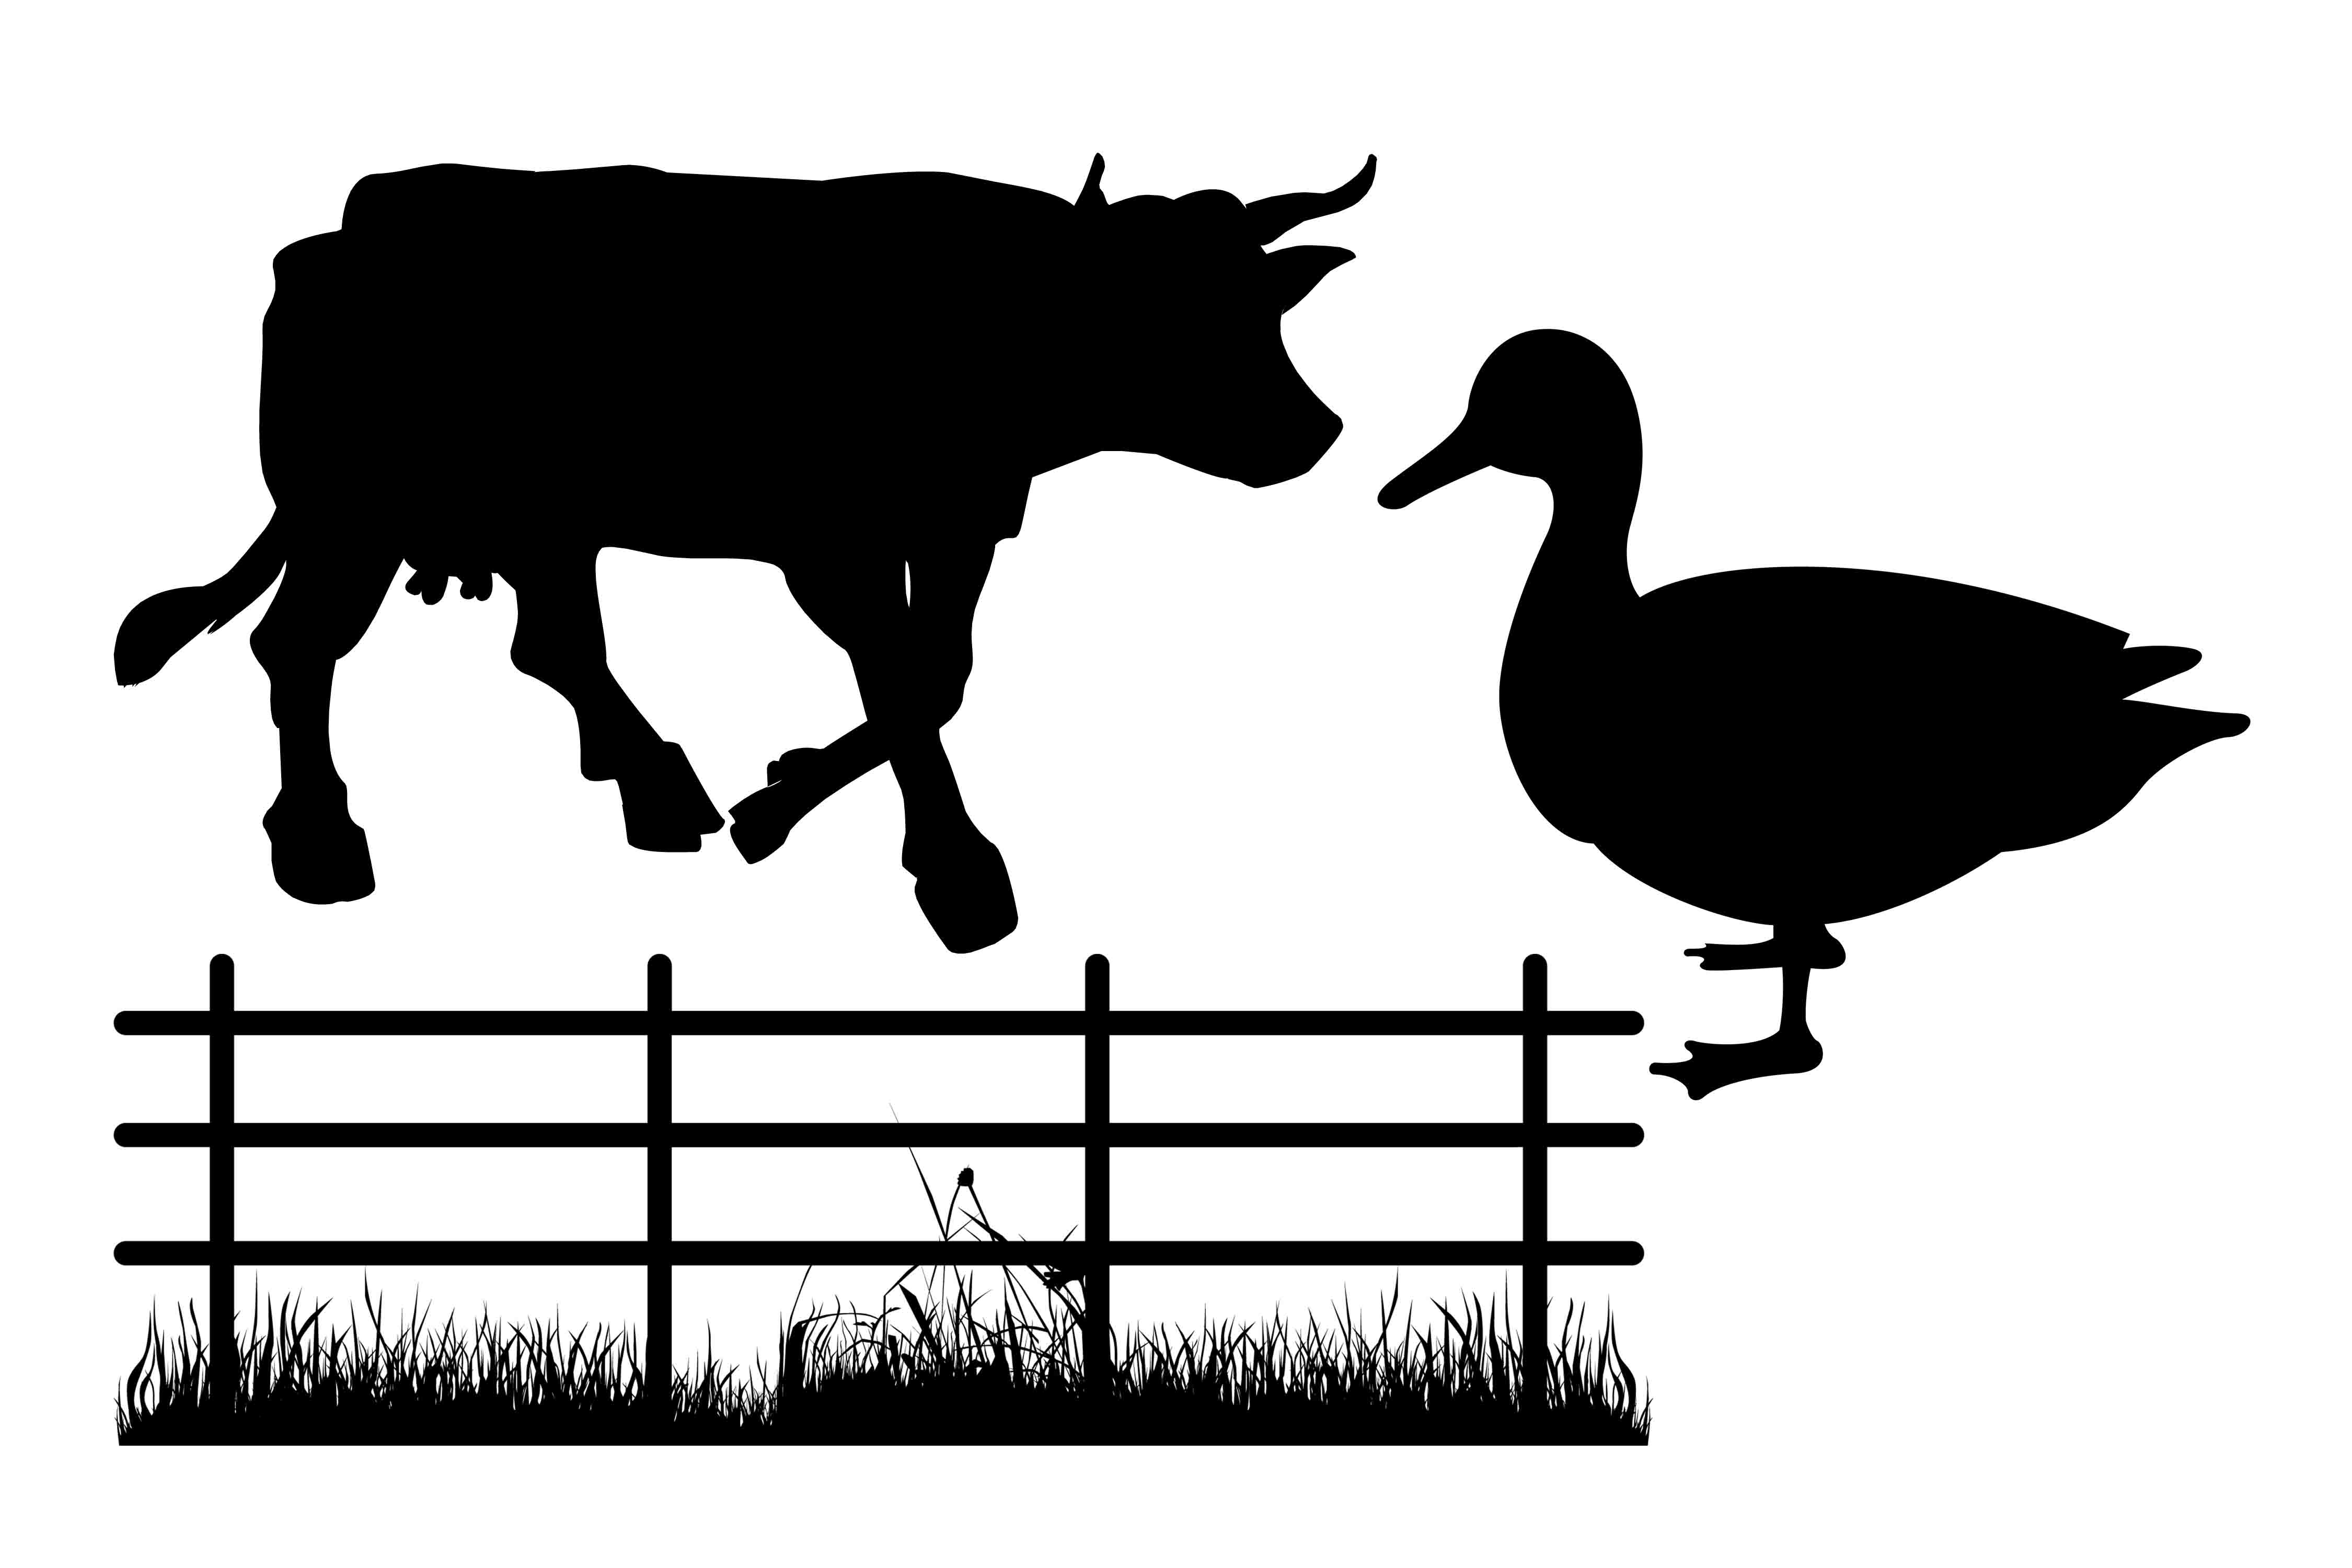 Farm animal silhouette PNG SVG EPS DXF example image 2